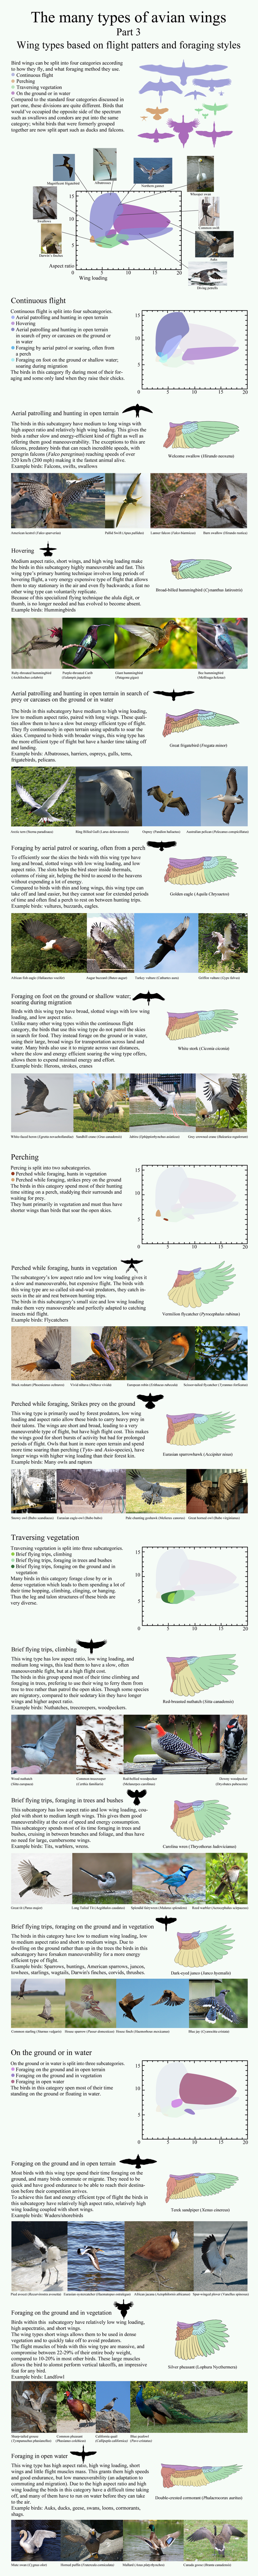 The many types of avian wings. part 3 by camelpardia